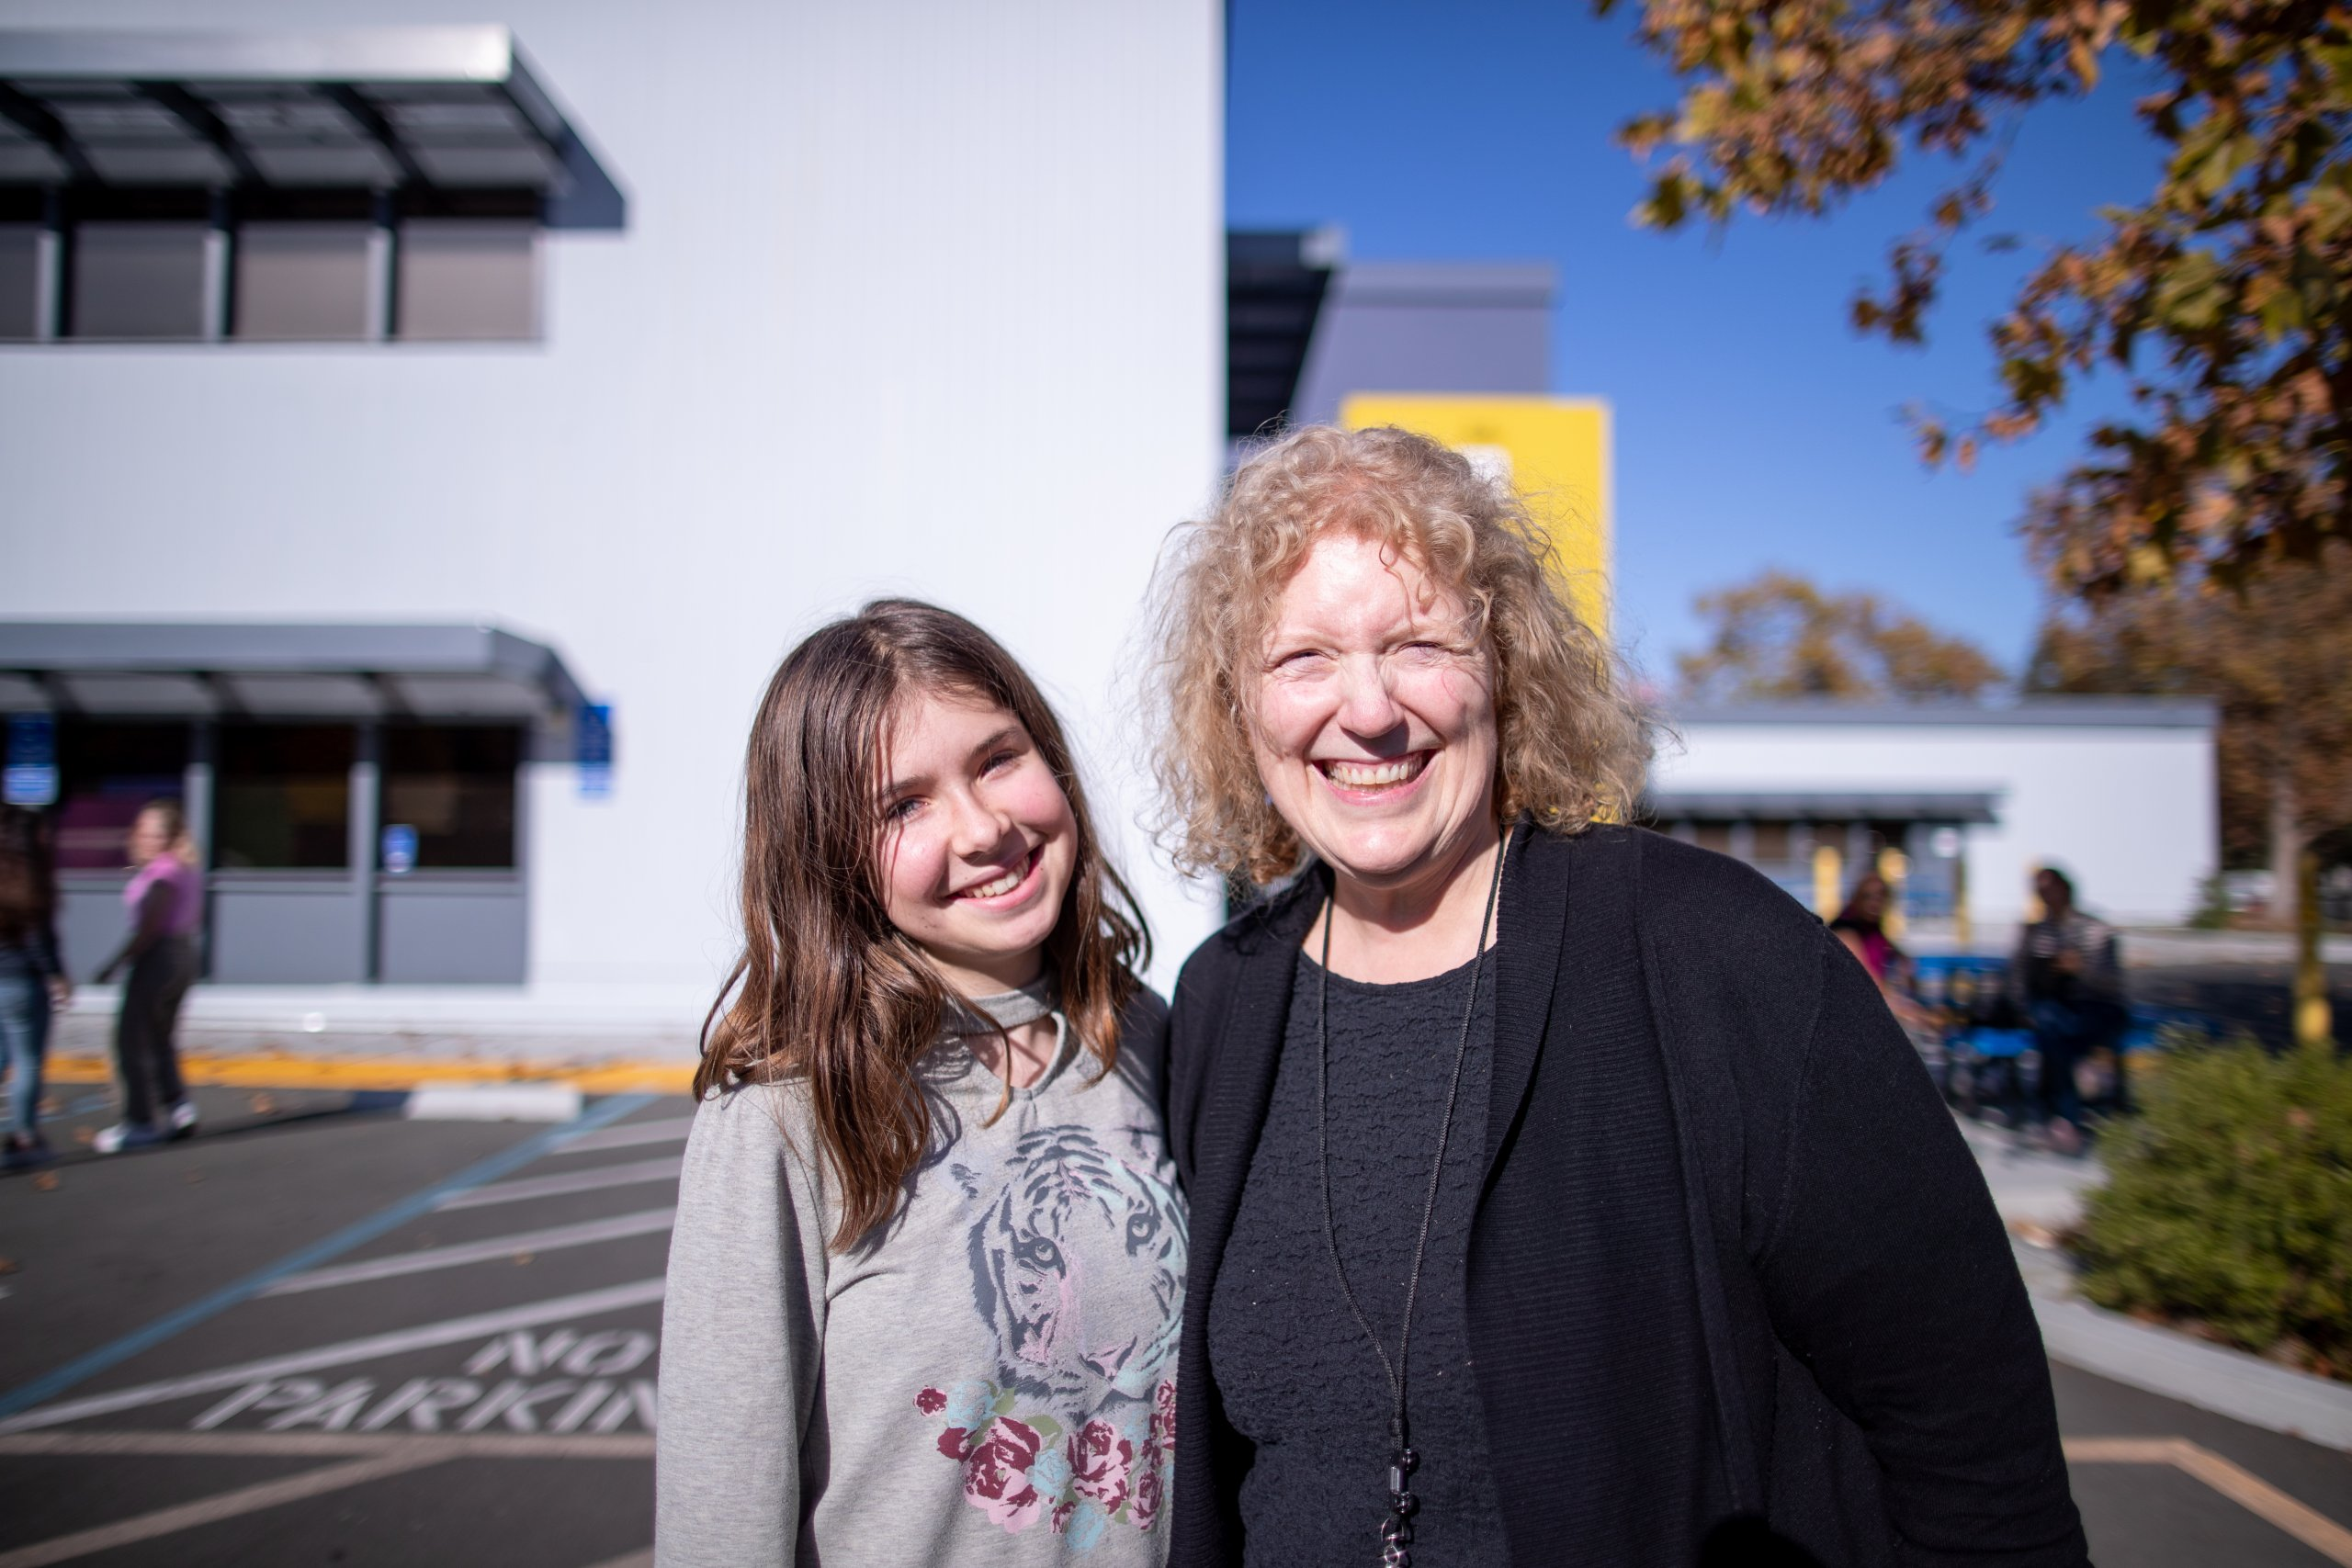 School Counselor Heather Concoff with a student outside Quest Forward Academy Santa Rosa